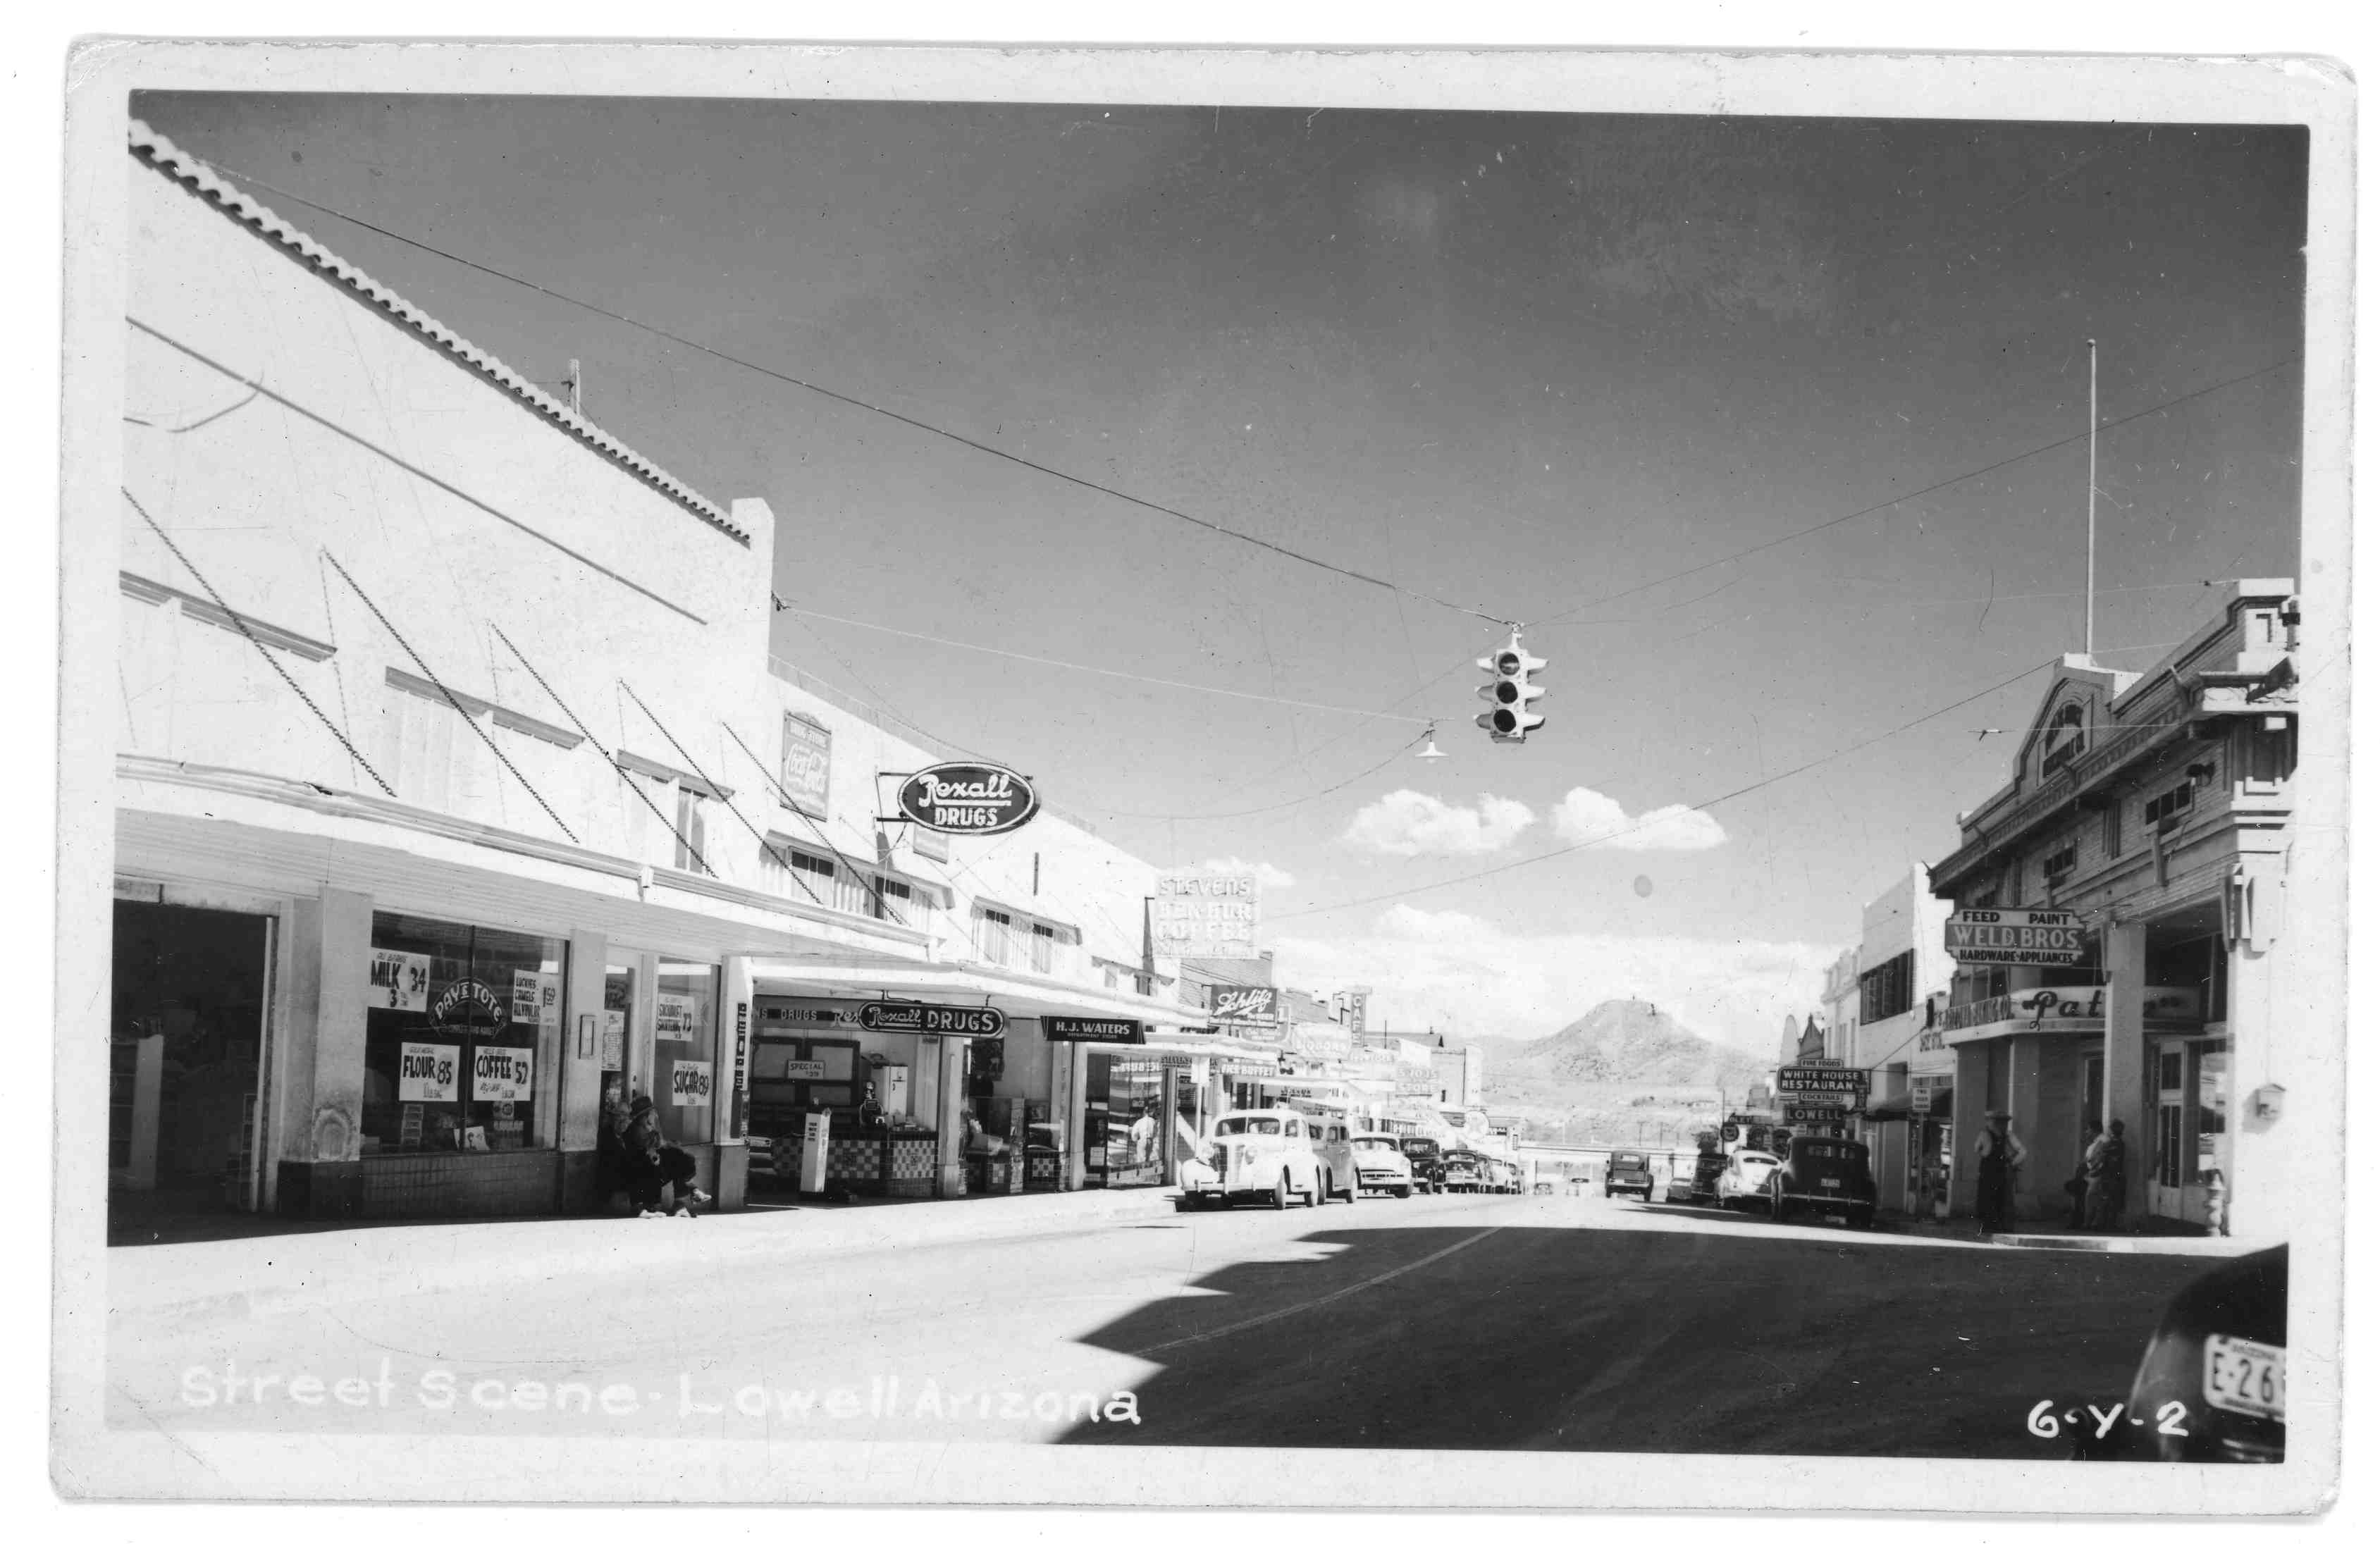 Bisbee Historical and Mining Museum photo, Lowell in 1930s